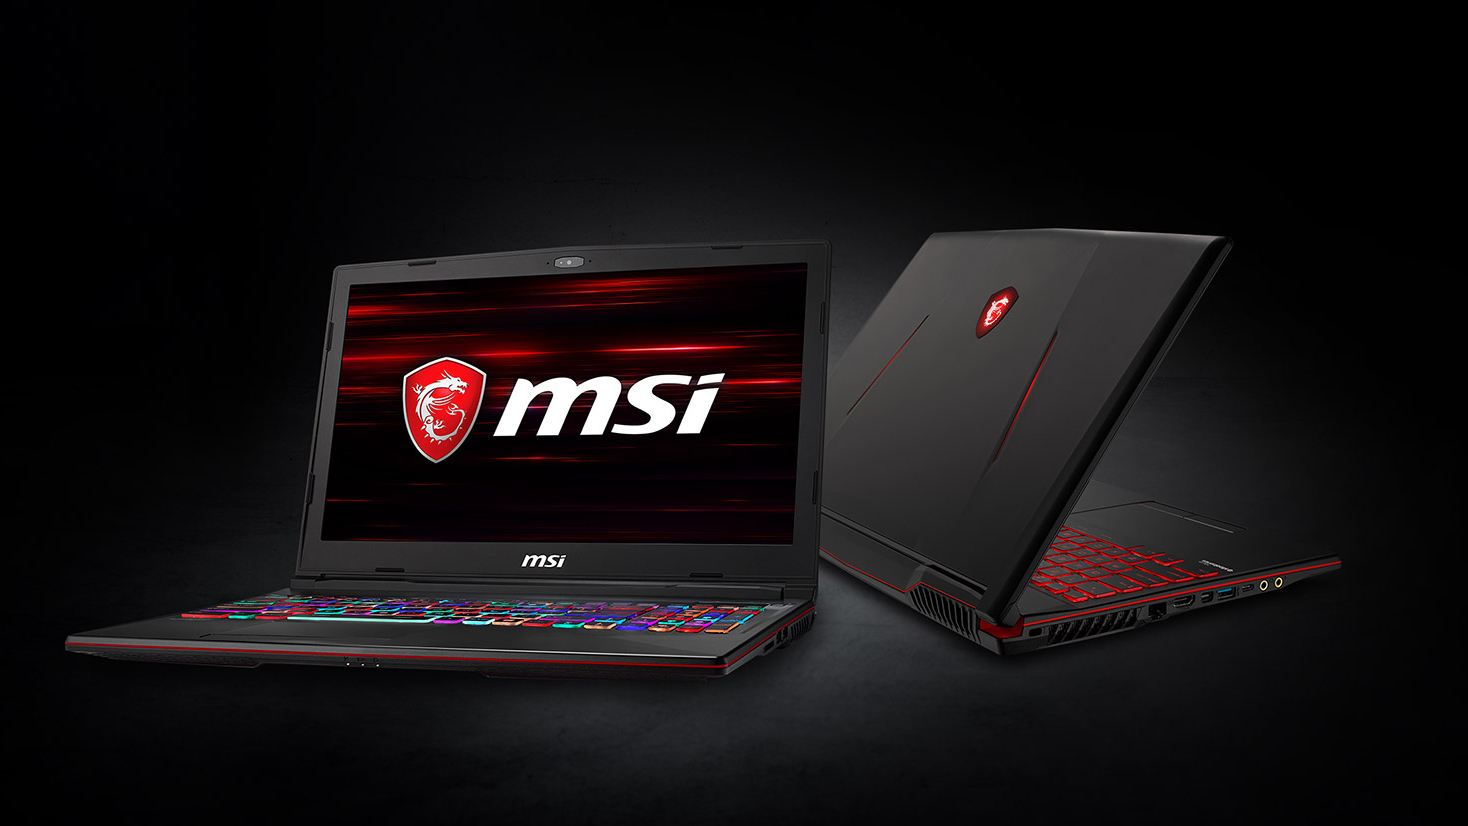 This MSI gaming laptop has an RTX 2060 and a 120Hz panel, and it's